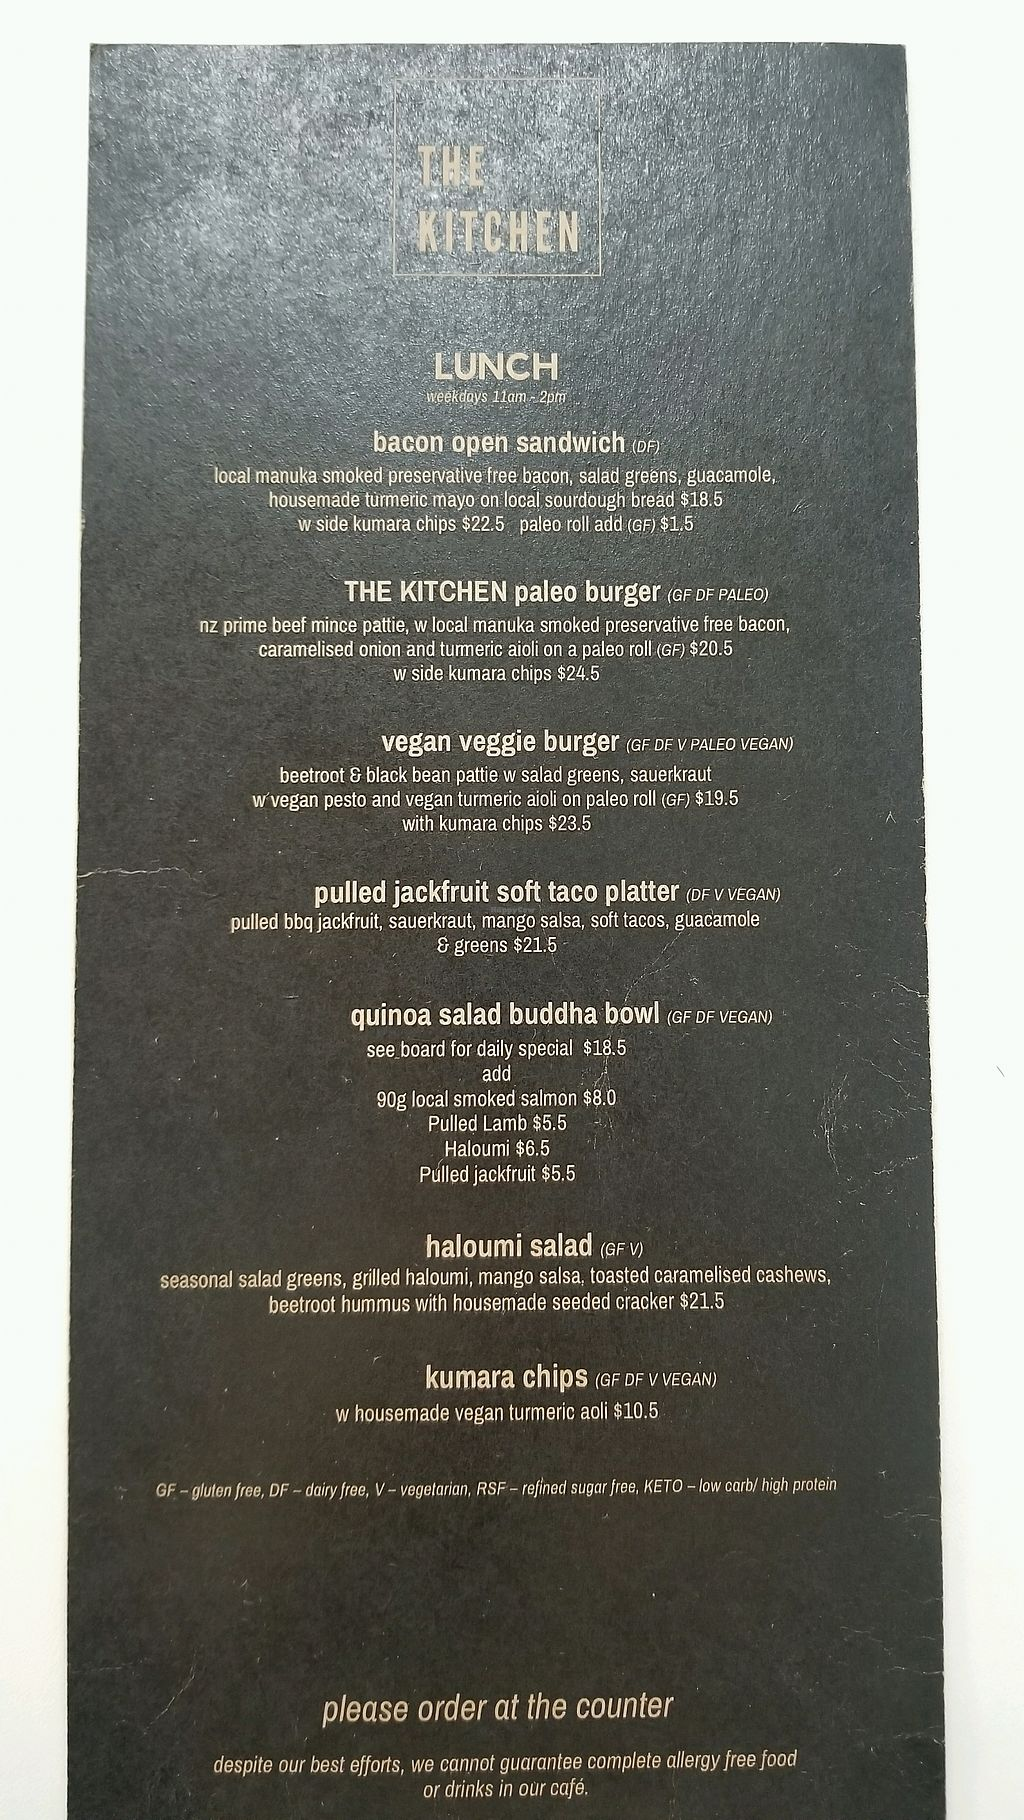 """Photo of The Kitchen  by <a href=""""/members/profile/AndyTheVWDude"""">AndyTheVWDude</a> <br/>Lunch Menu ~ April 2018 <br/> April 13, 2018  - <a href='/contact/abuse/image/105813/385286'>Report</a>"""